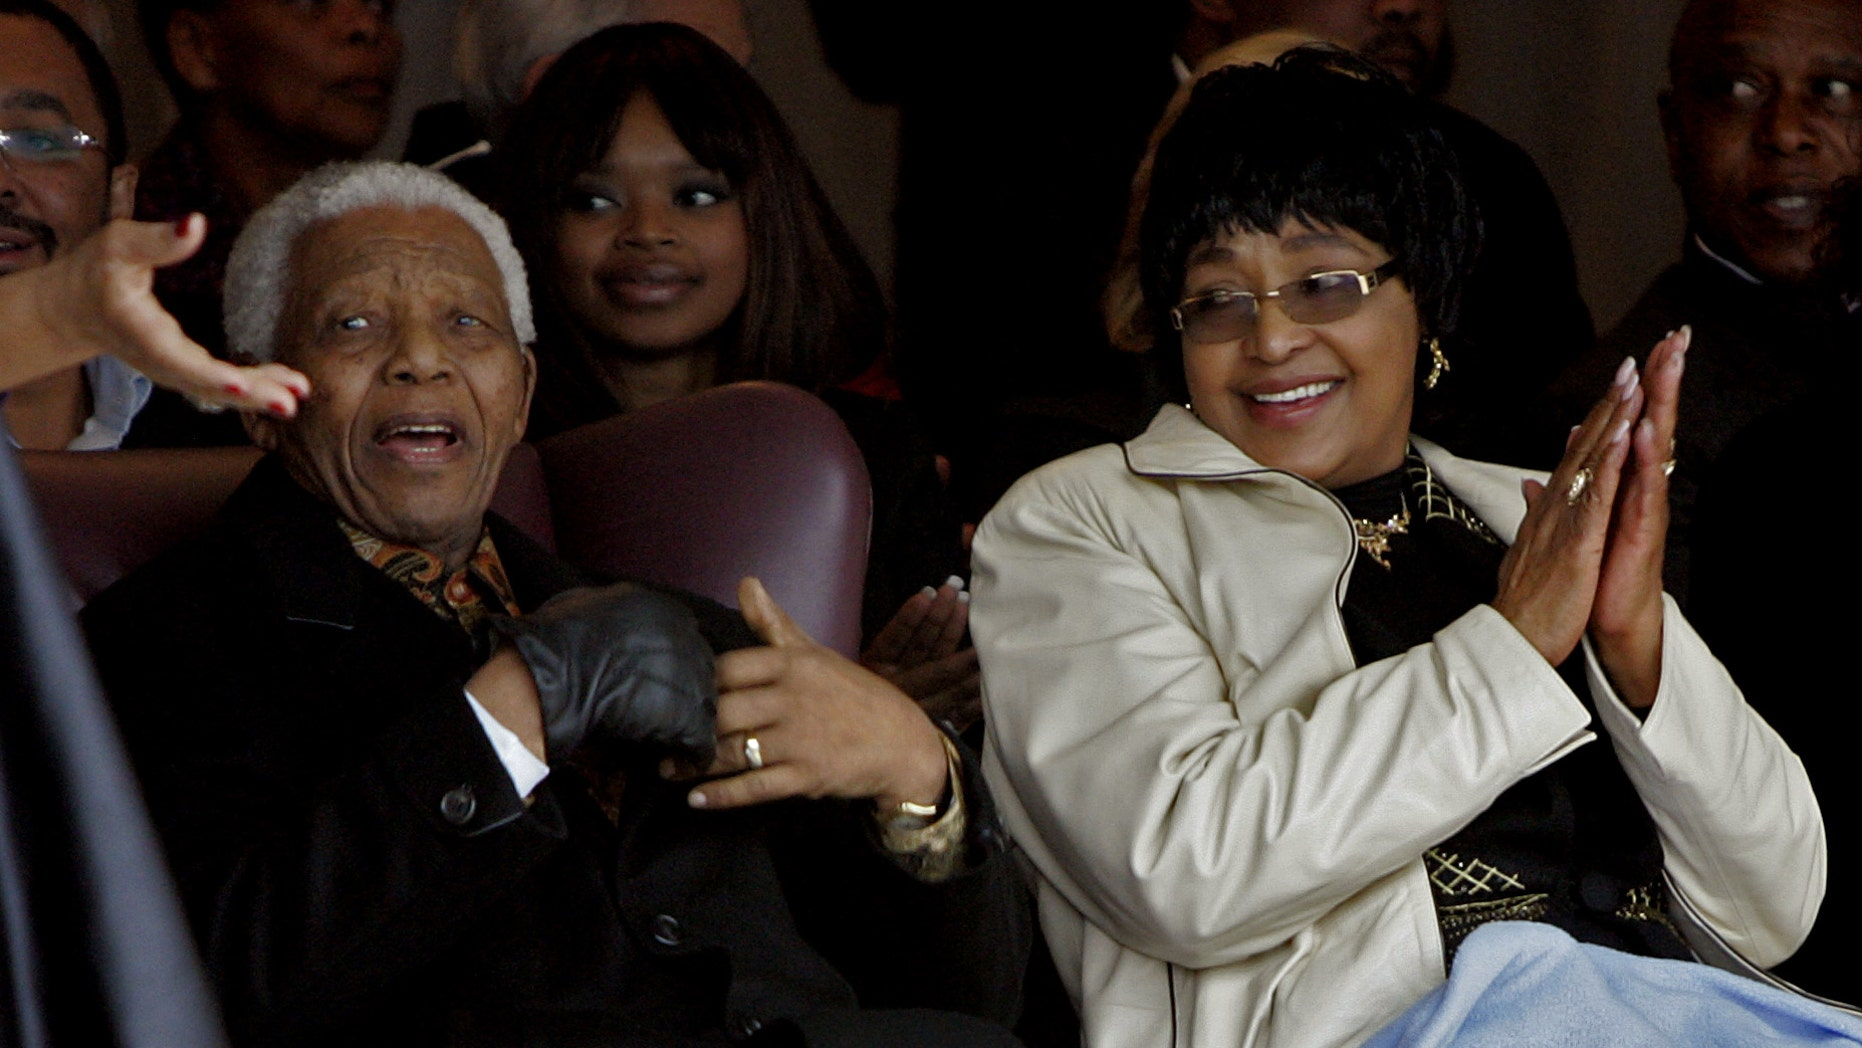 "FILE  - In this Thursday, Aug. 21, 2008 file photo former president Nelson Mandela, left, and his ex-wife Winnie Madikizela-Mandela, right, during the unveiling of a statue of Mandela at the Drakenstein Prison near Franschhoek, South Africa. Madikizela-Mandela told a South African newspaper published Sunday Nov. 17, 2013, that Mandela, remains ""quite ill"" and unable to speak because of tubes that are keeping his lungs clear of fluid, though he is relaxed. (AP Photo/Schalk van Zuydam-File)"